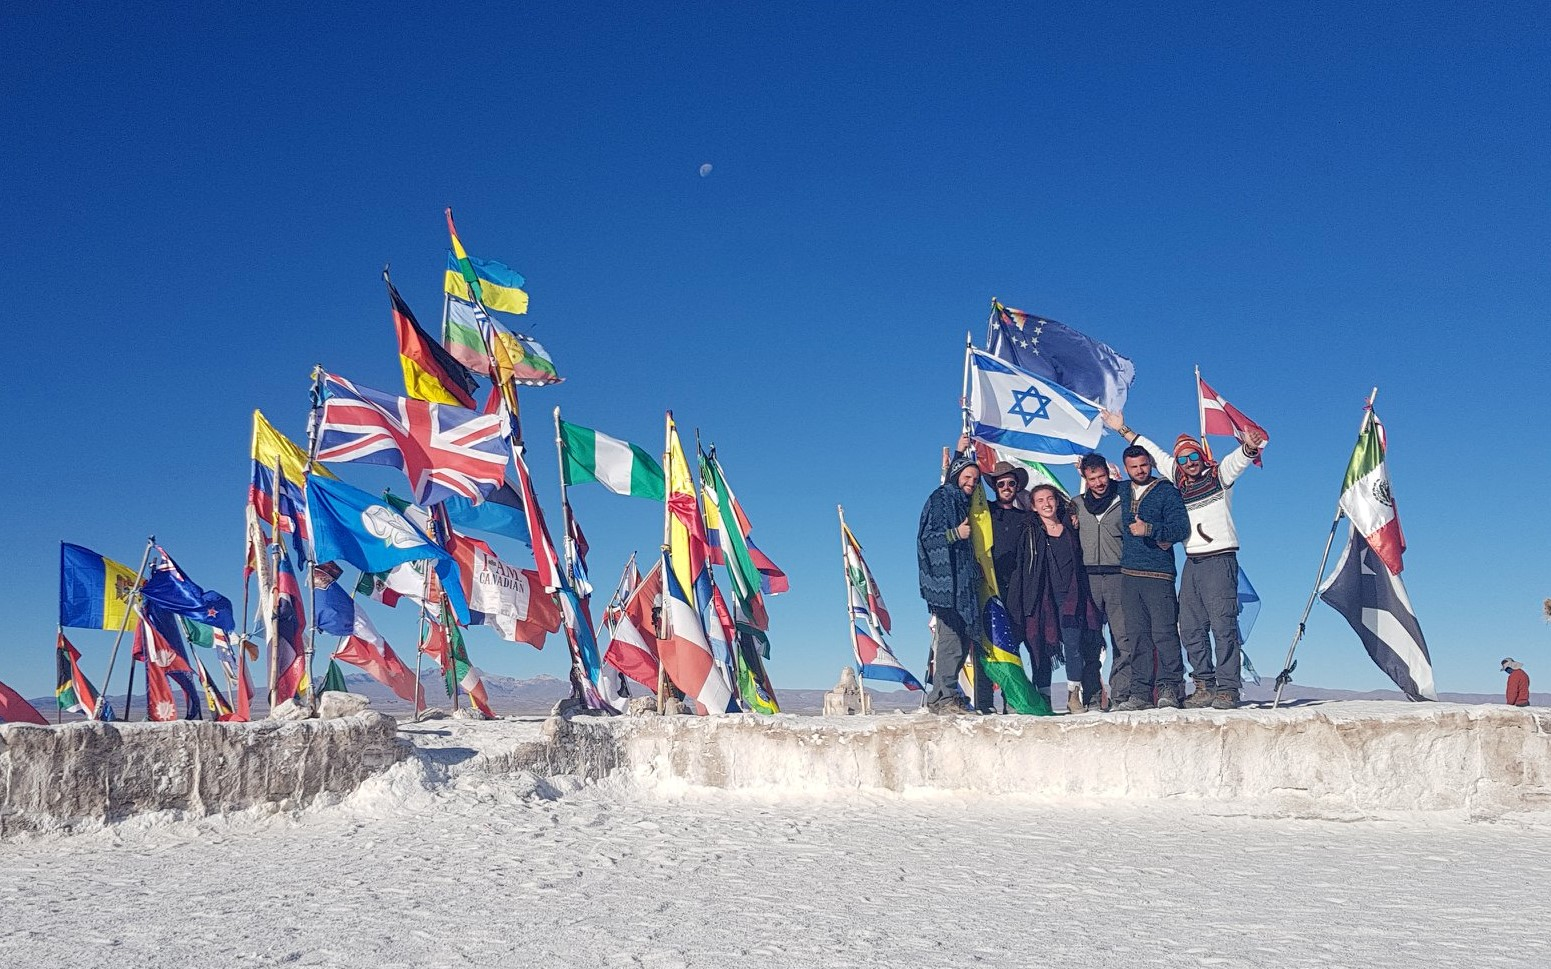 israeli group in the salt flats of bolivia holding israel flag